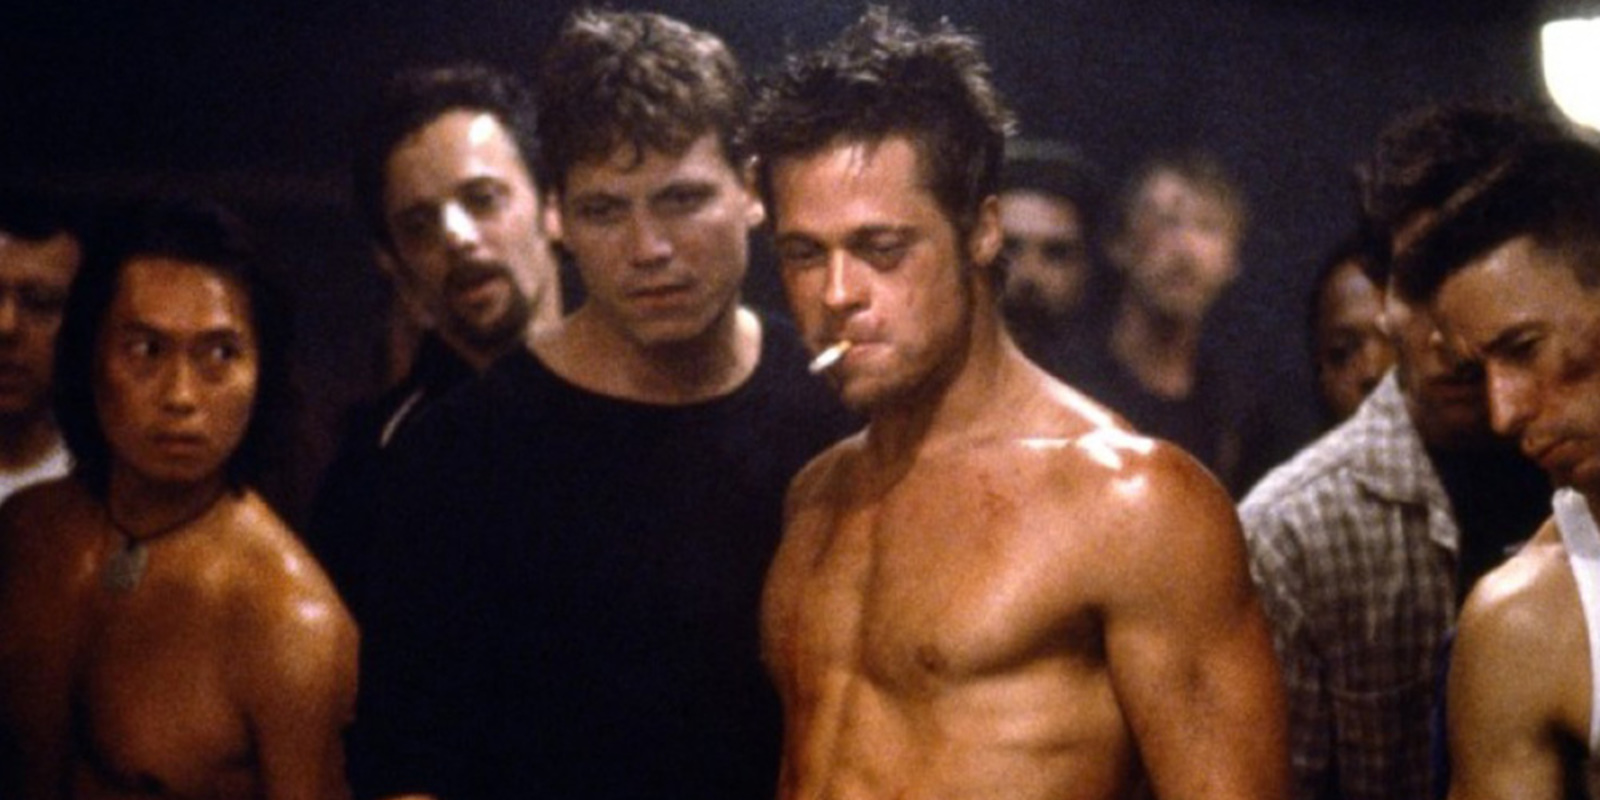 screenheaven brad pitt fight - photo #30